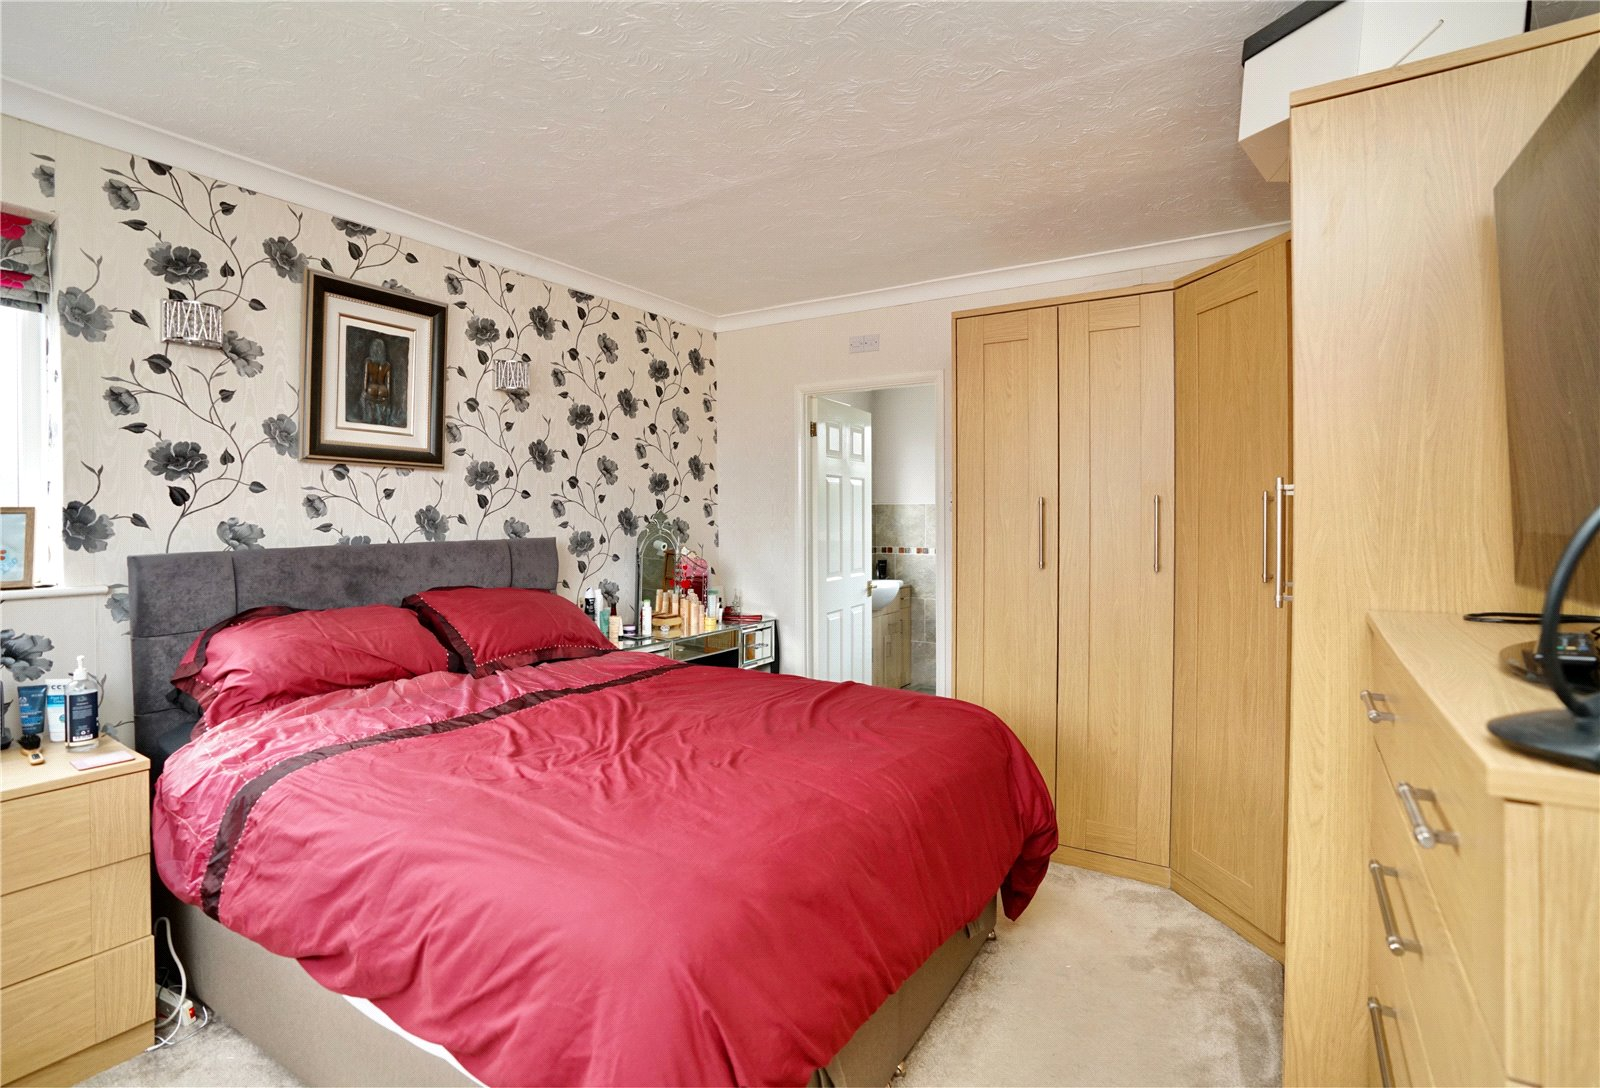 3 bed house for sale in Barley Road, Eaton Socon 7